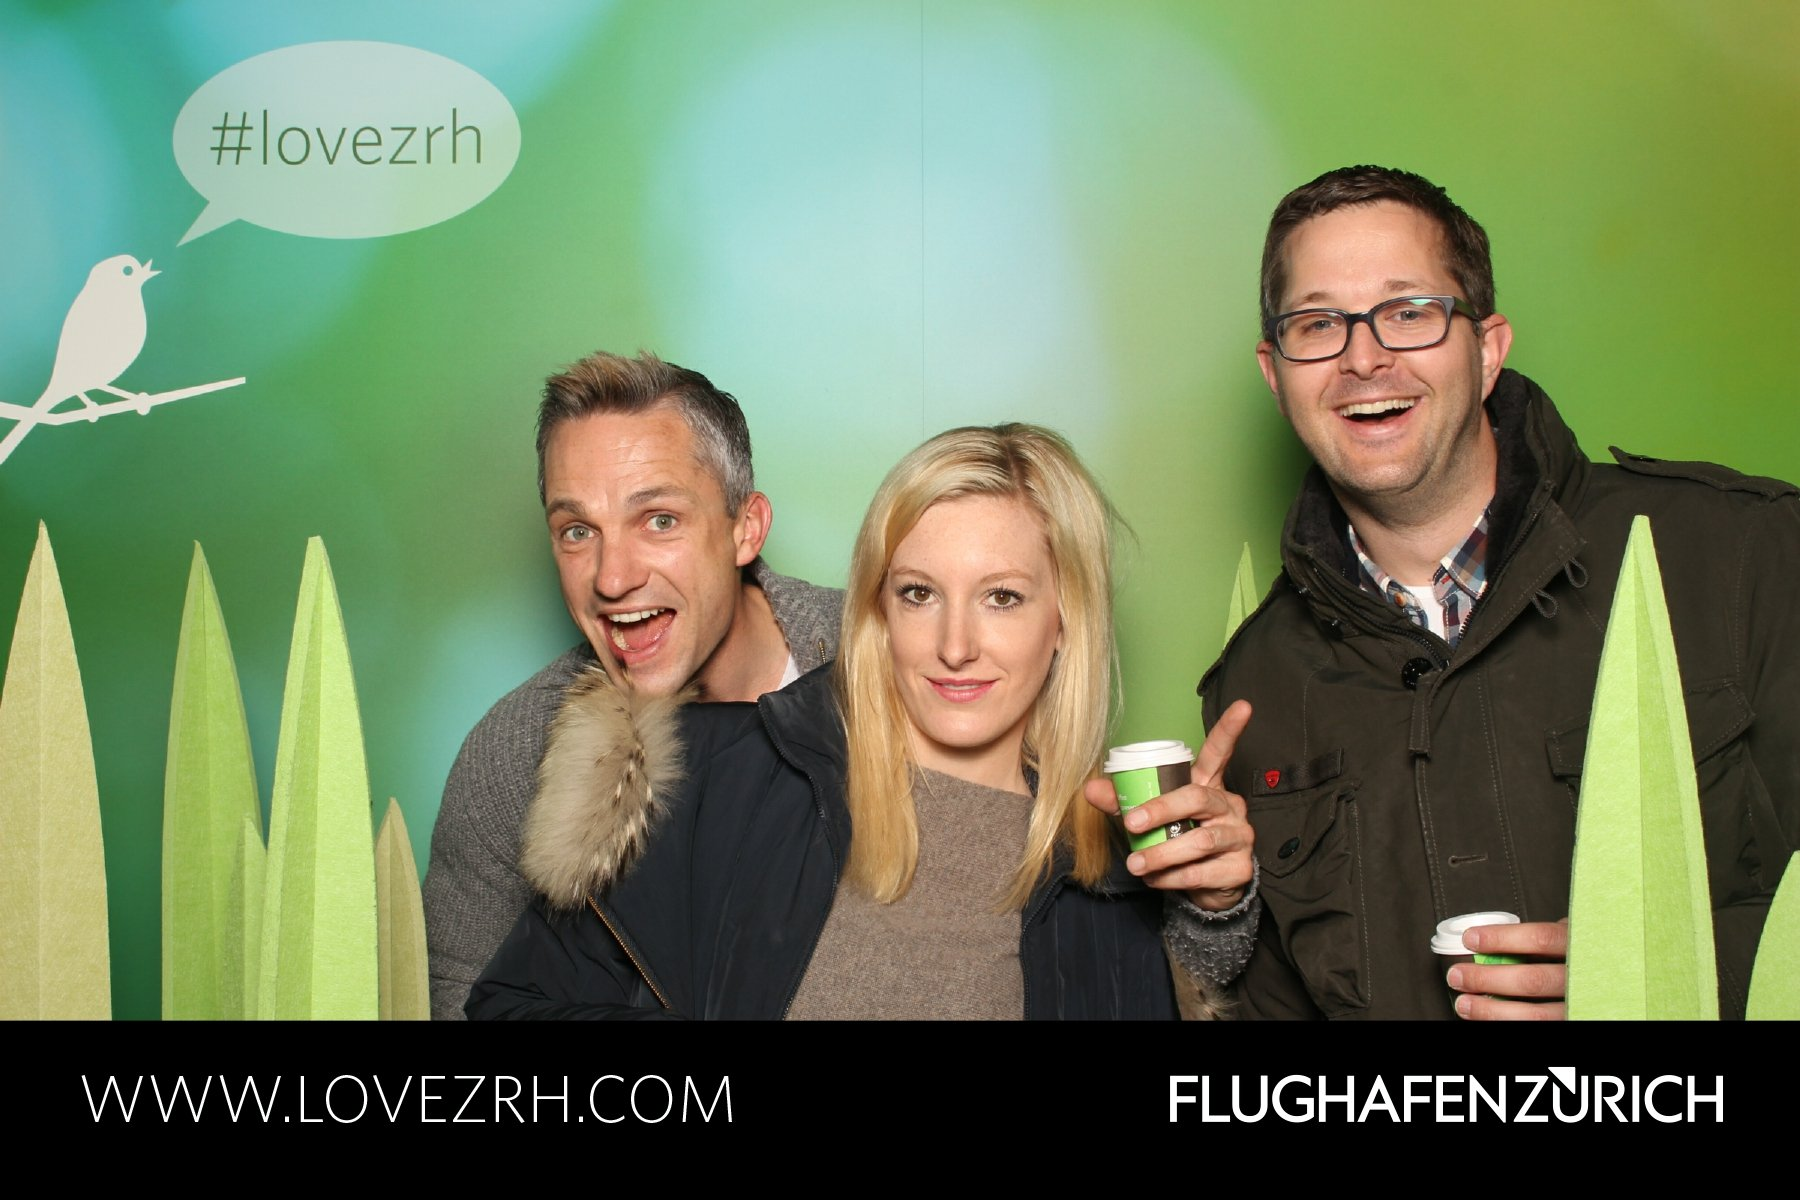 Photo-Booth-Pro-ZRH-Checkin2-03